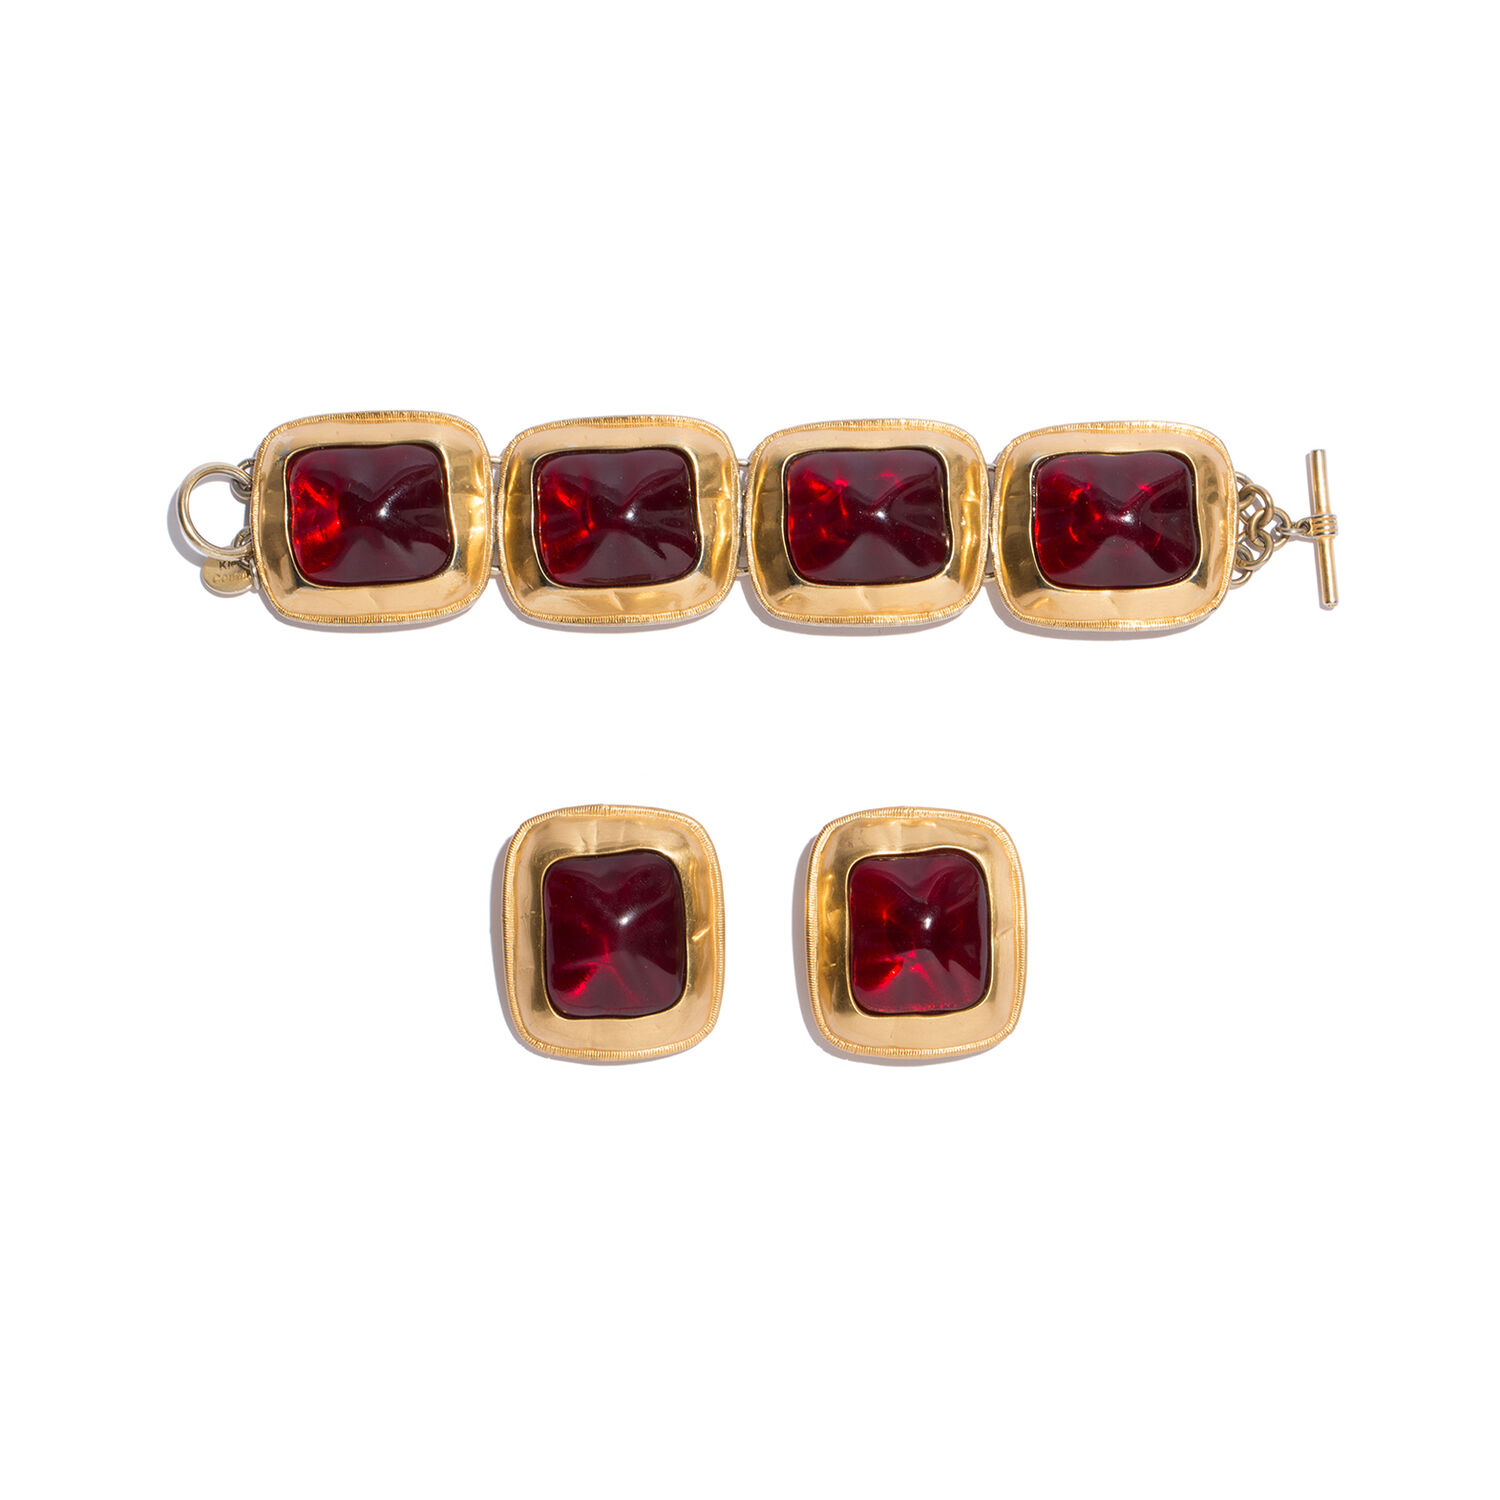 ANNE KLEIN | Anne Klein Jewelry Sets Women - Anne Klein Bracelet And Earring Set, 1980s Multicolor Gilded Metal And Stones In The Style Of Amber | Goxip